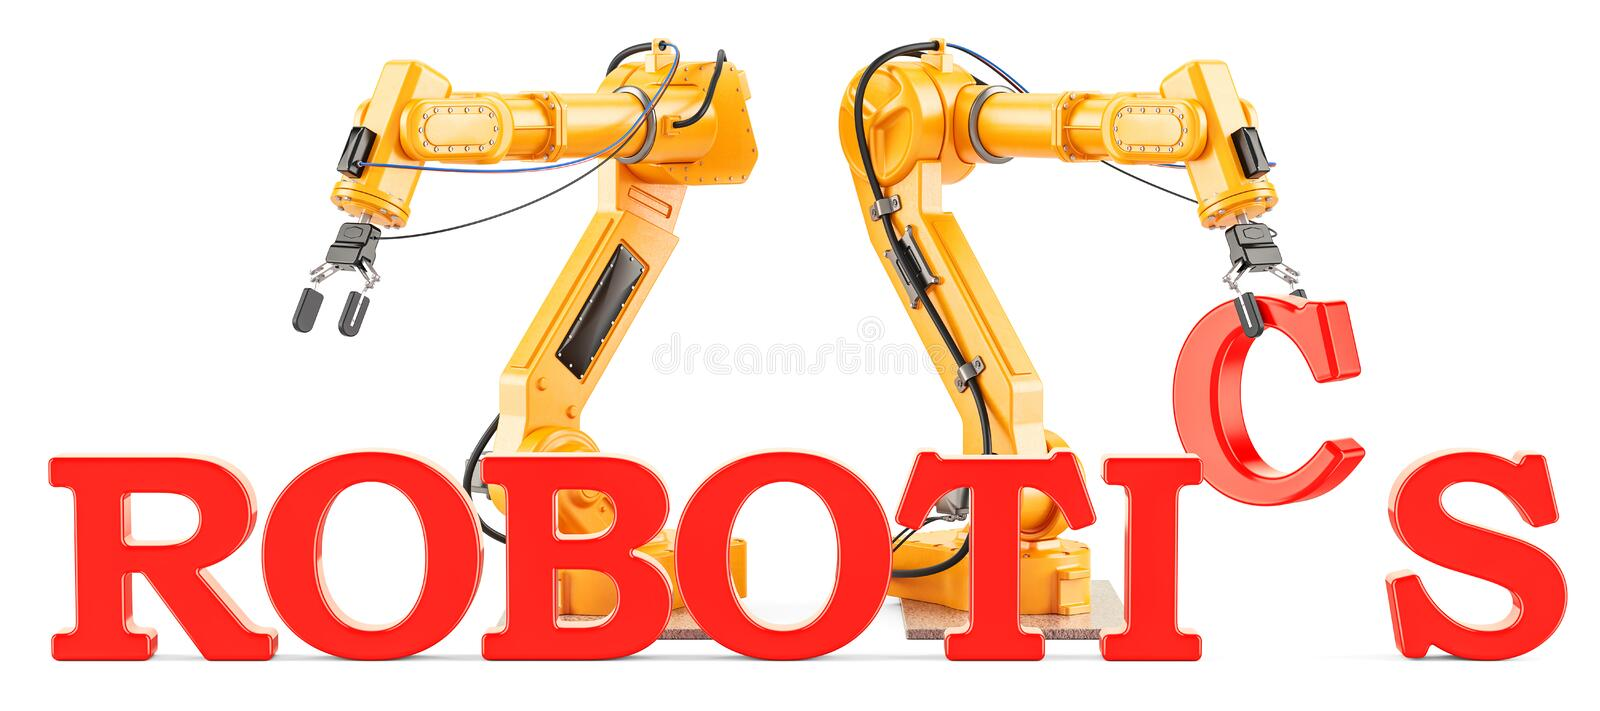 Robotics concept with robotic arms, 3D rendering vector illustration